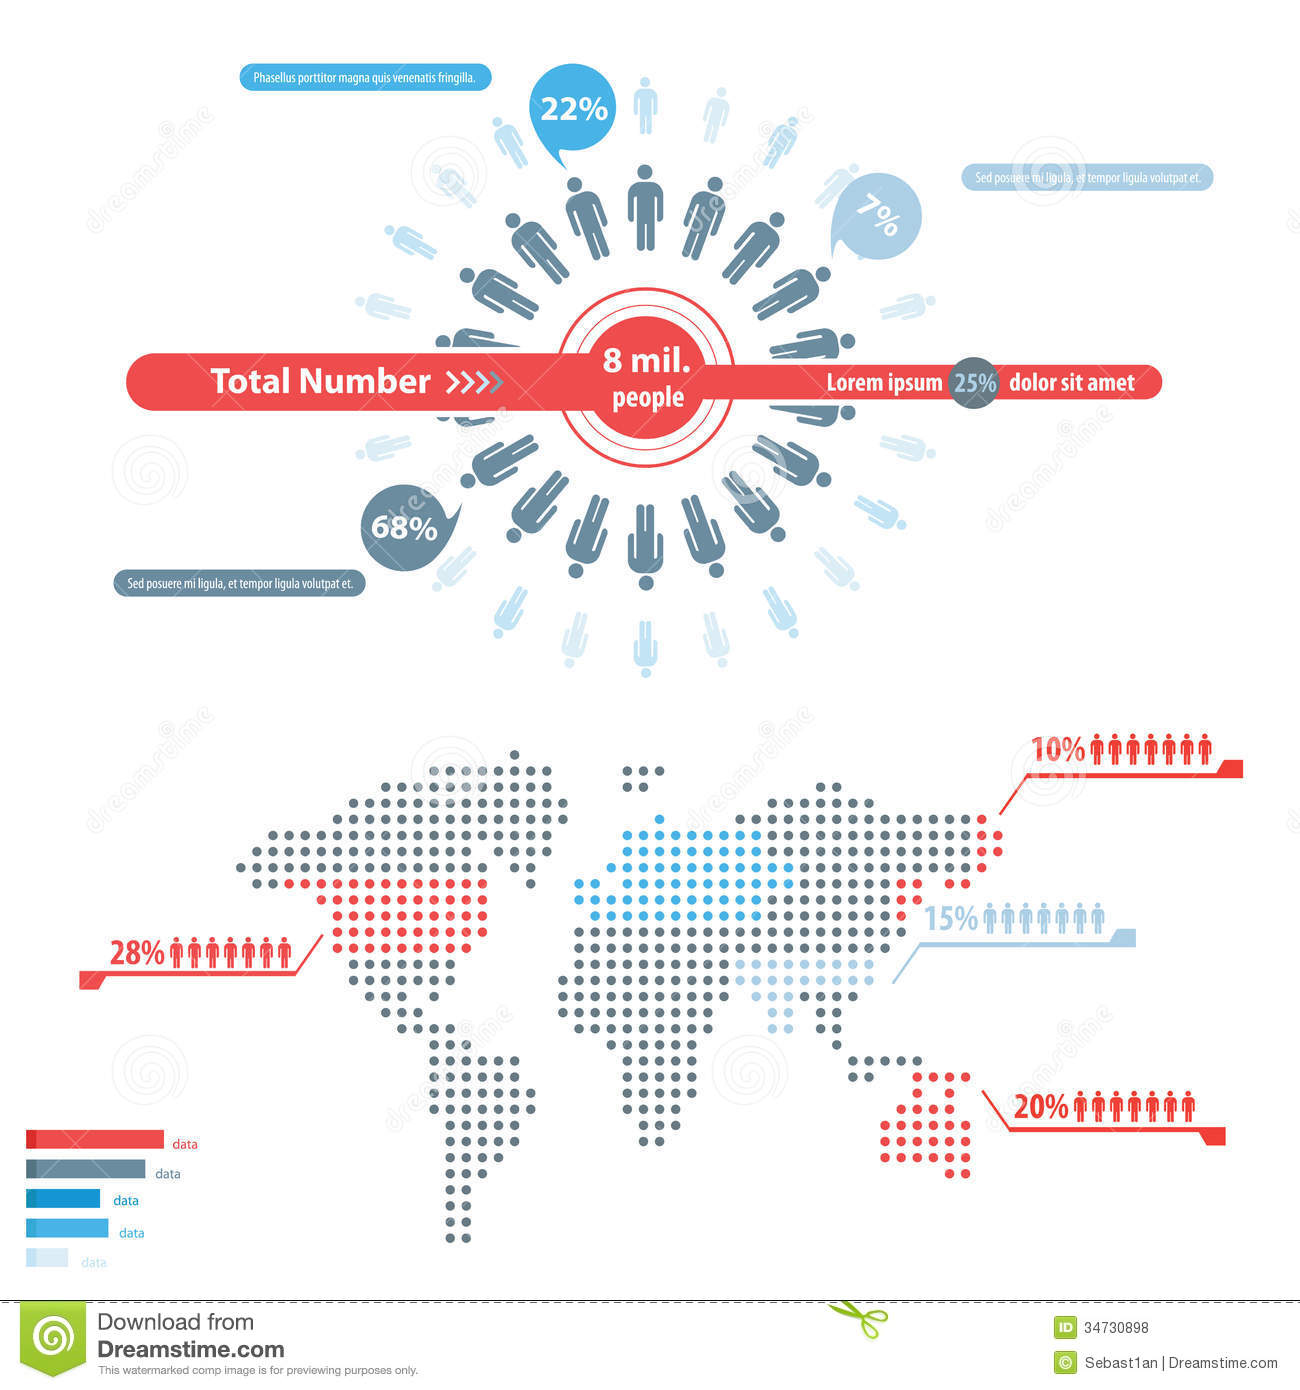 People Infographic Royalty Free Stock Photos - Image: 34730898